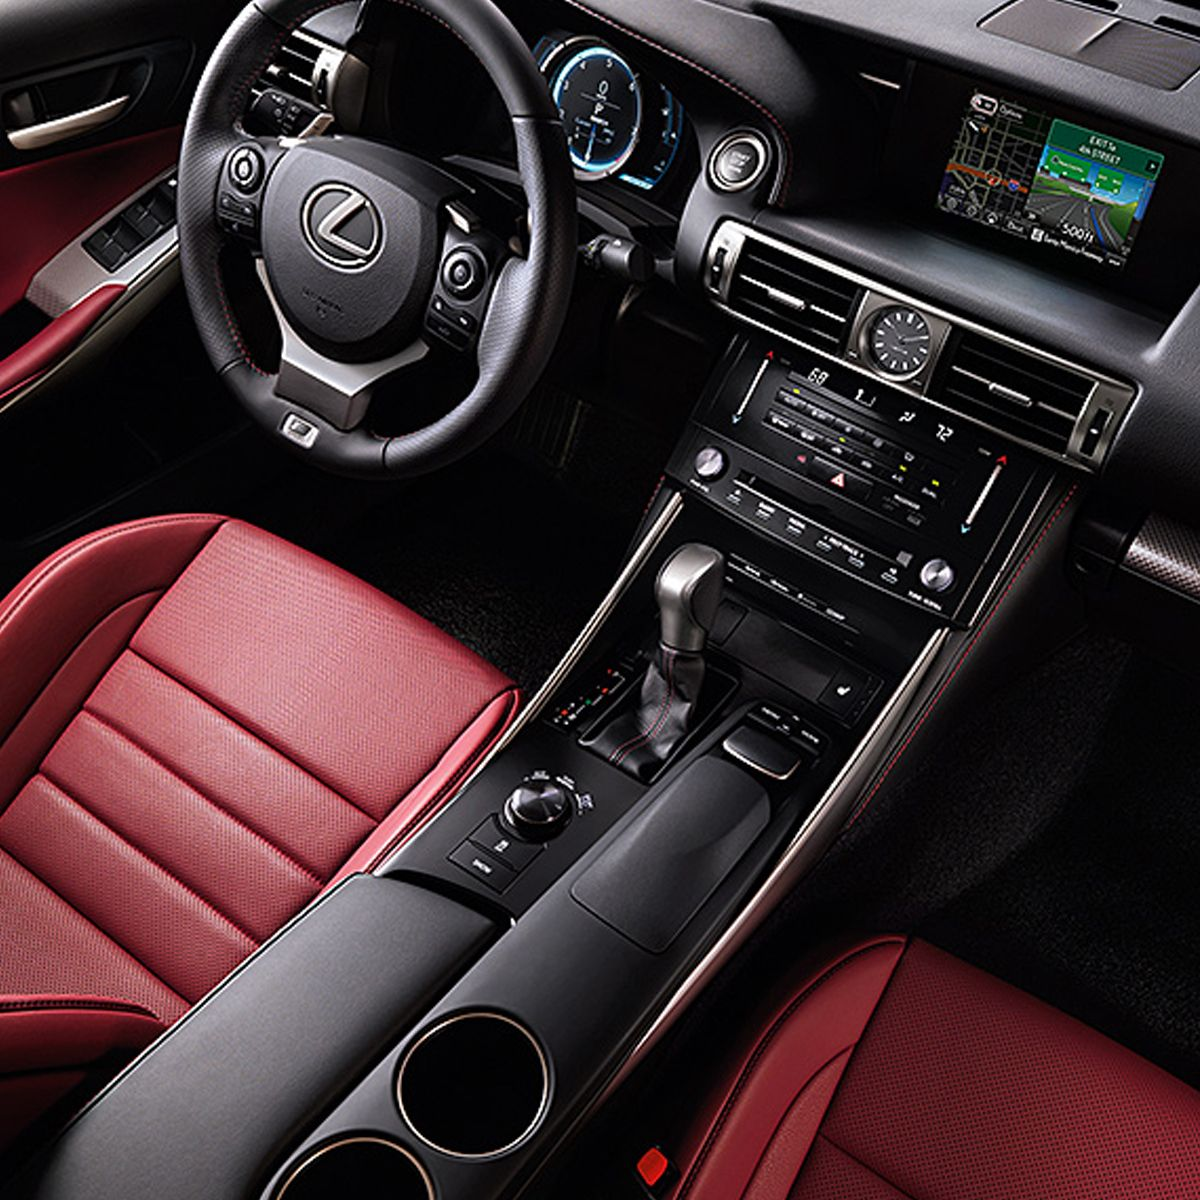 Lexus 2014 IS F Sport Interior In Rioja Red NuLuxe Trim With Available  Navigation System.